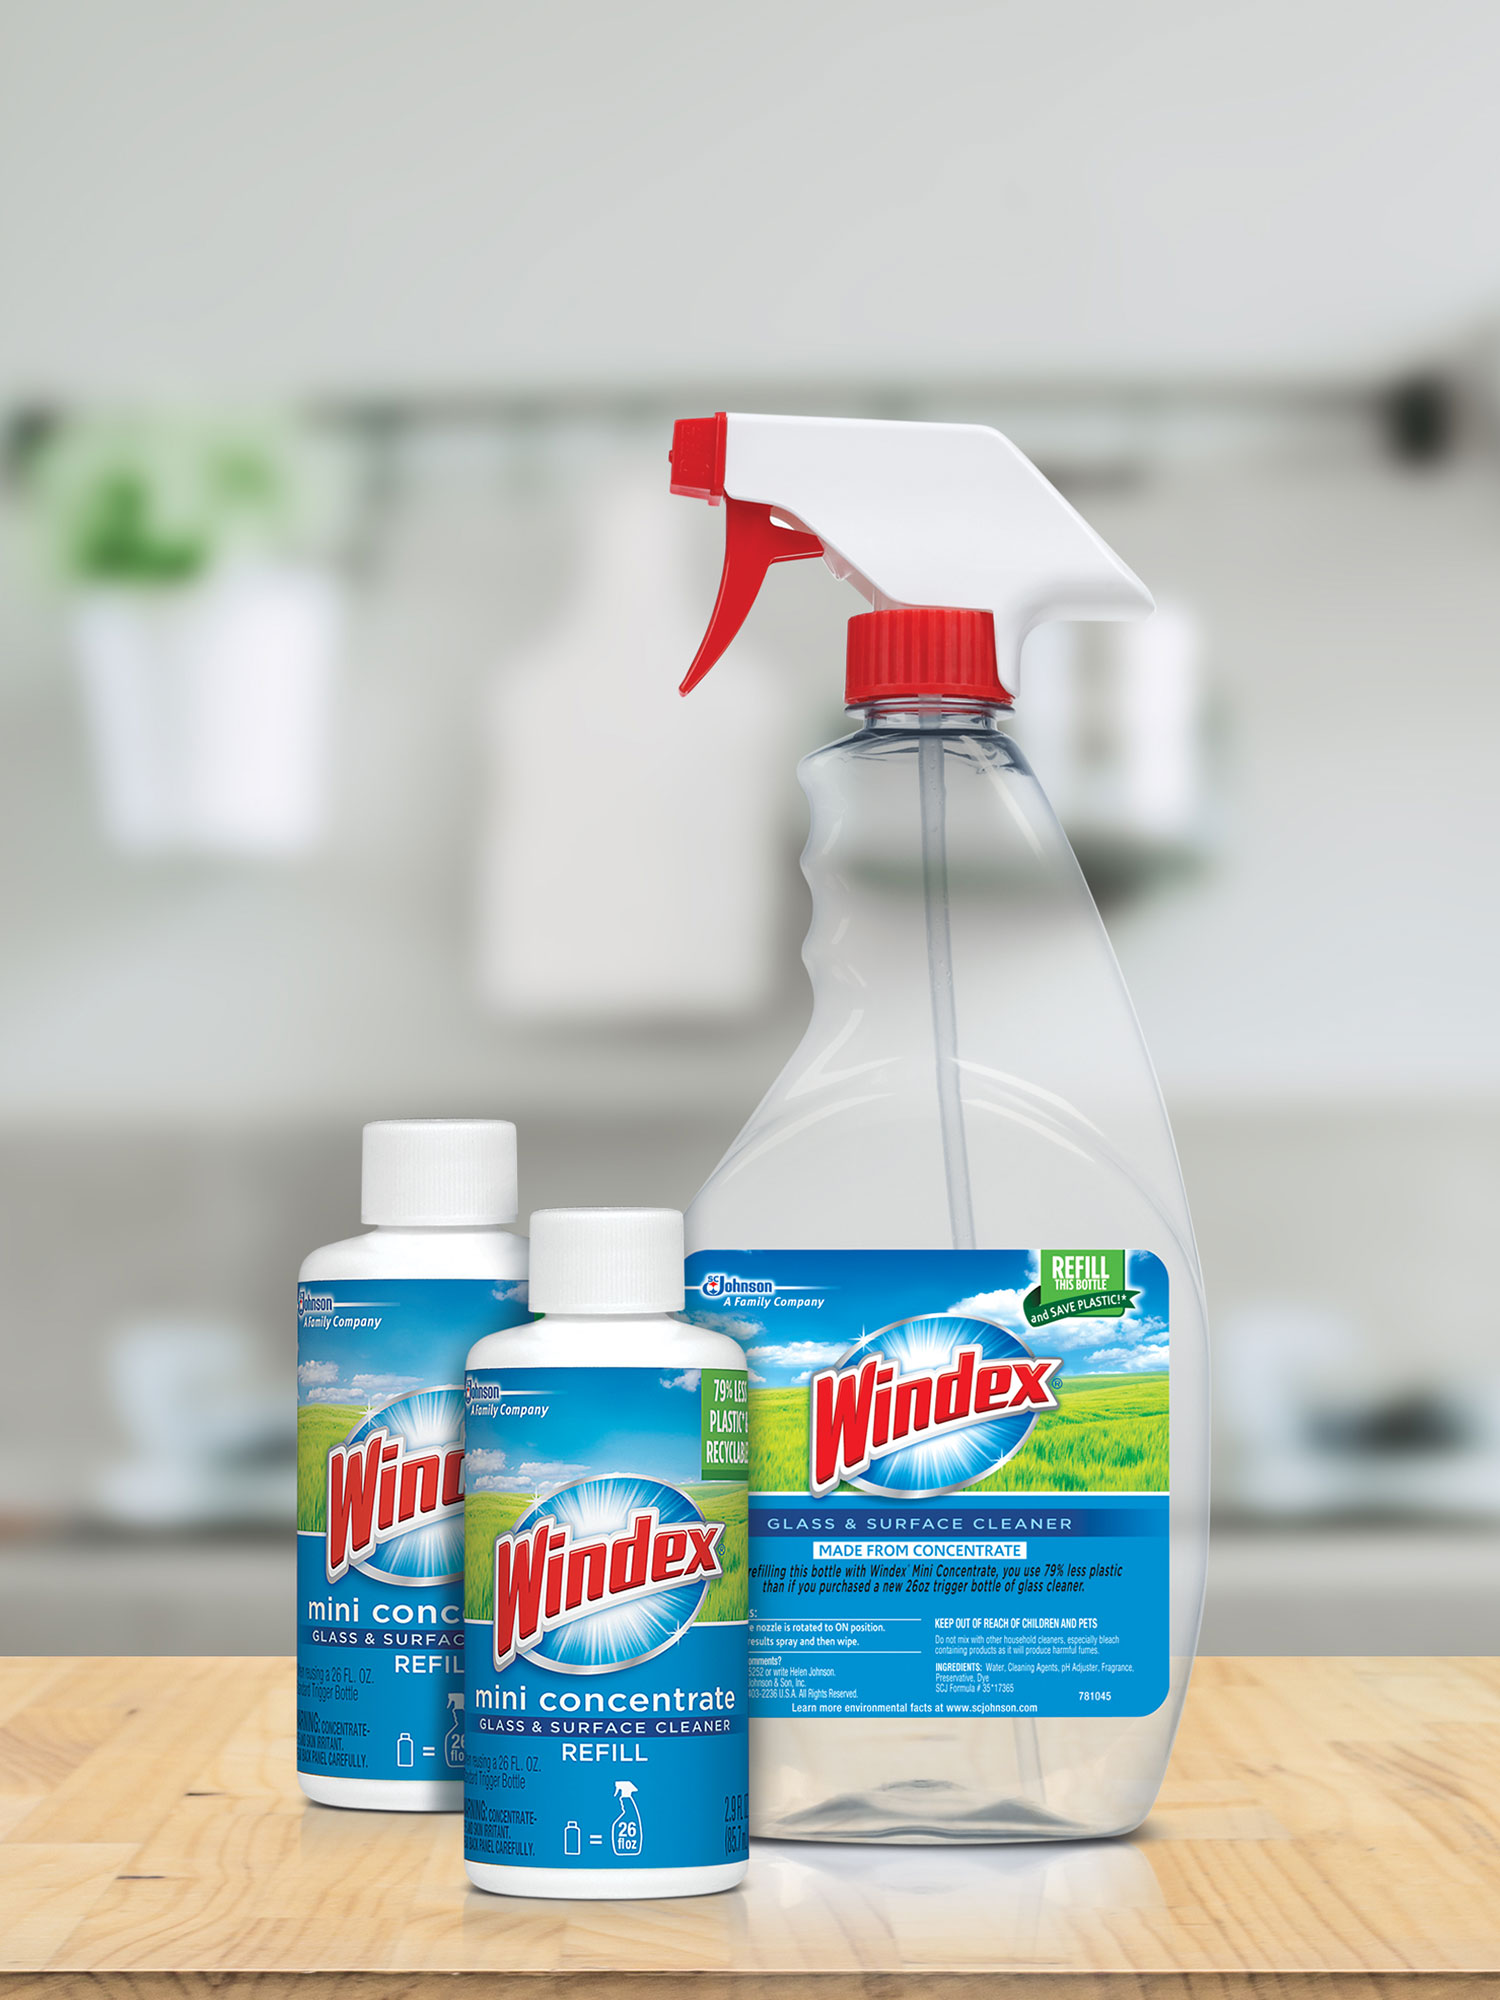 SC Johnson Windex mini concentrate products